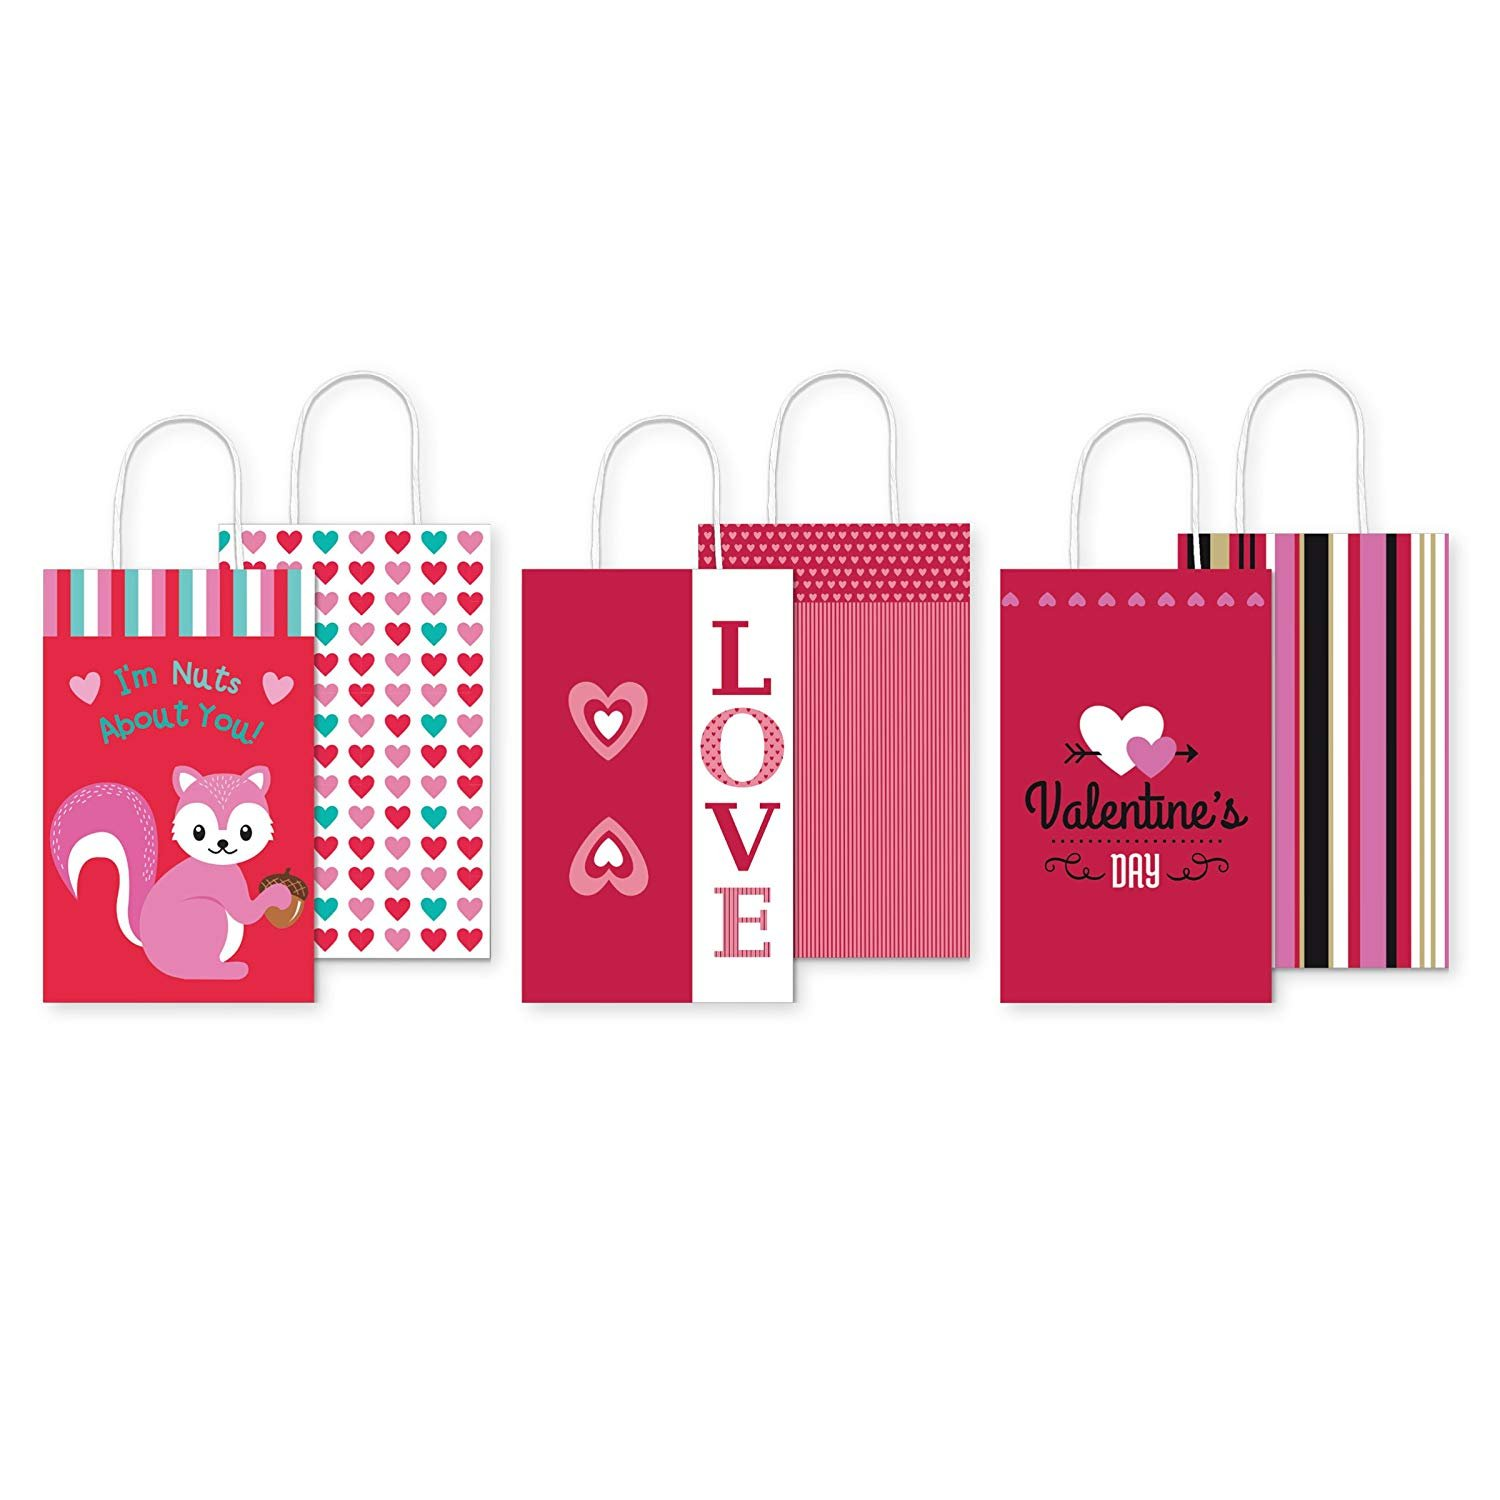 Pack of 6 Small Kraft Valentine's Gift Bags - Perfect Size for Cute Gifts and Sweet Treats